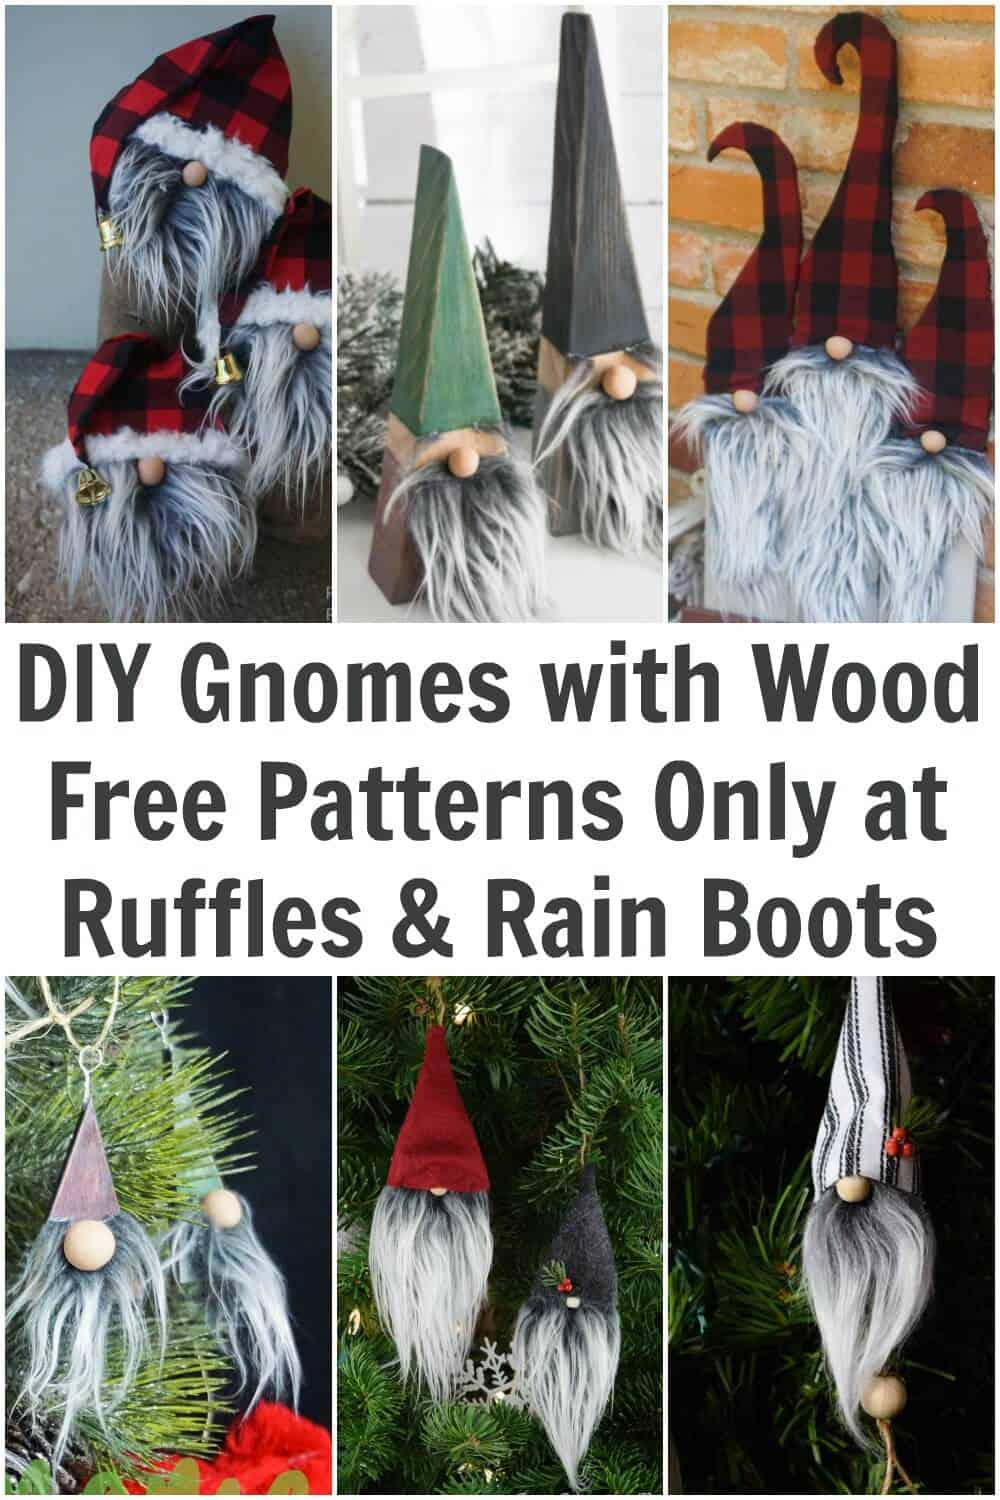 six image collage of wood gnomes and ornaments with text which reads diy gnomes with wood free patterns